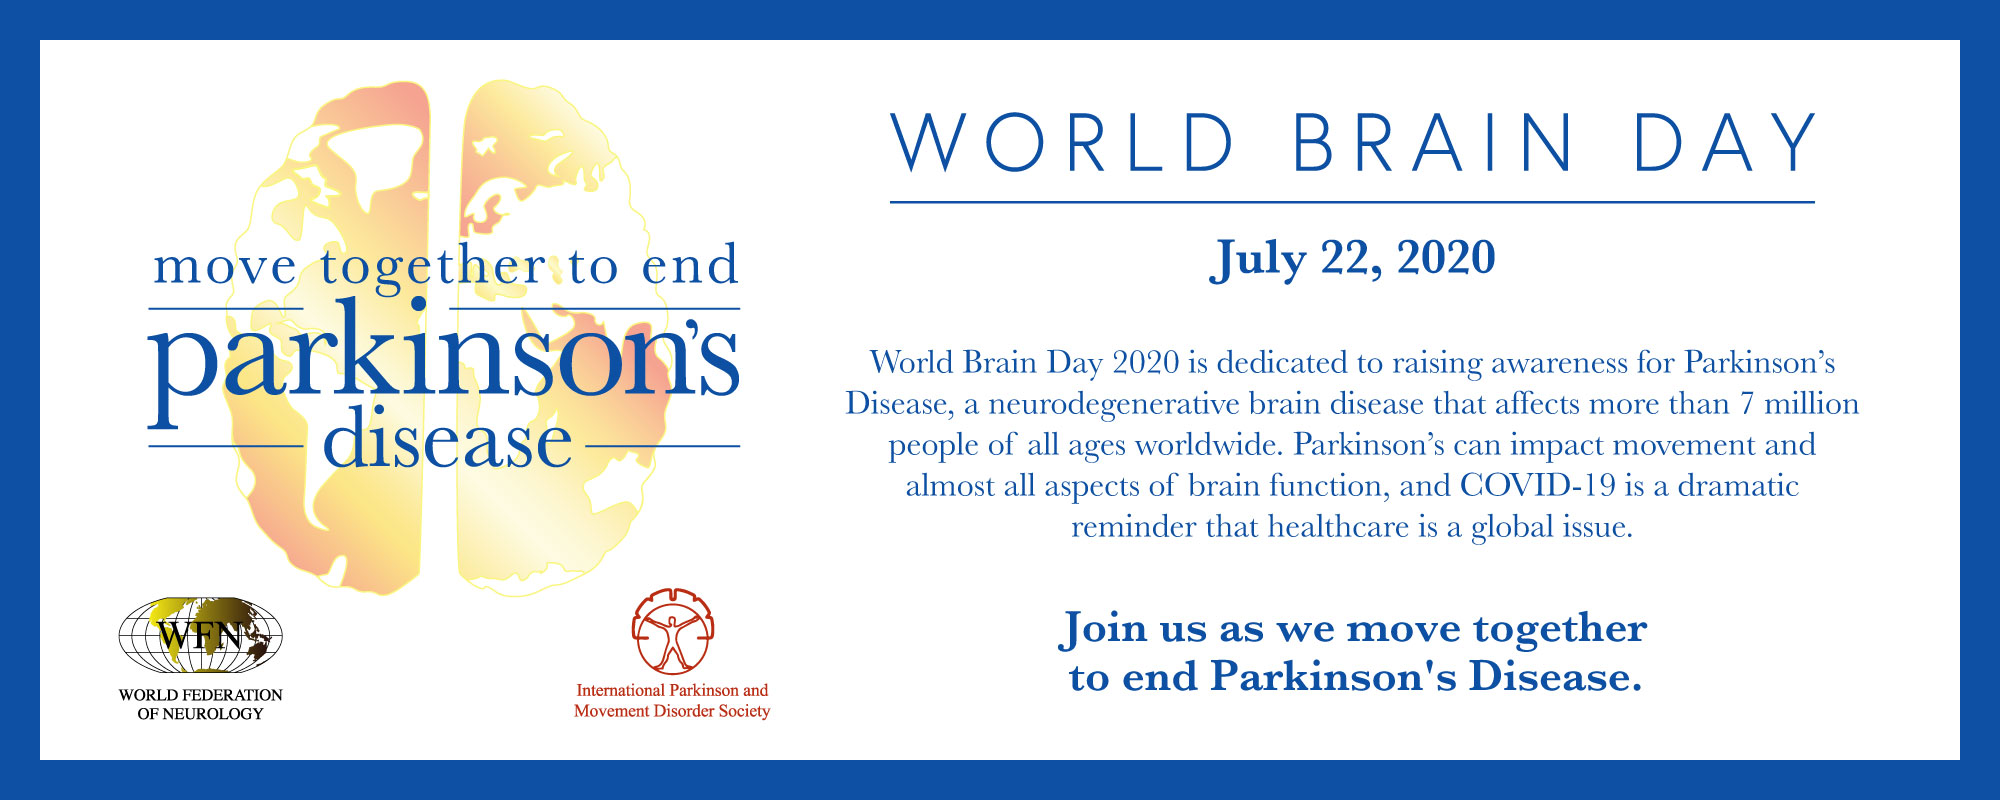 World Brain Day Celebrated in Pakistan to end up Parkinson's disease